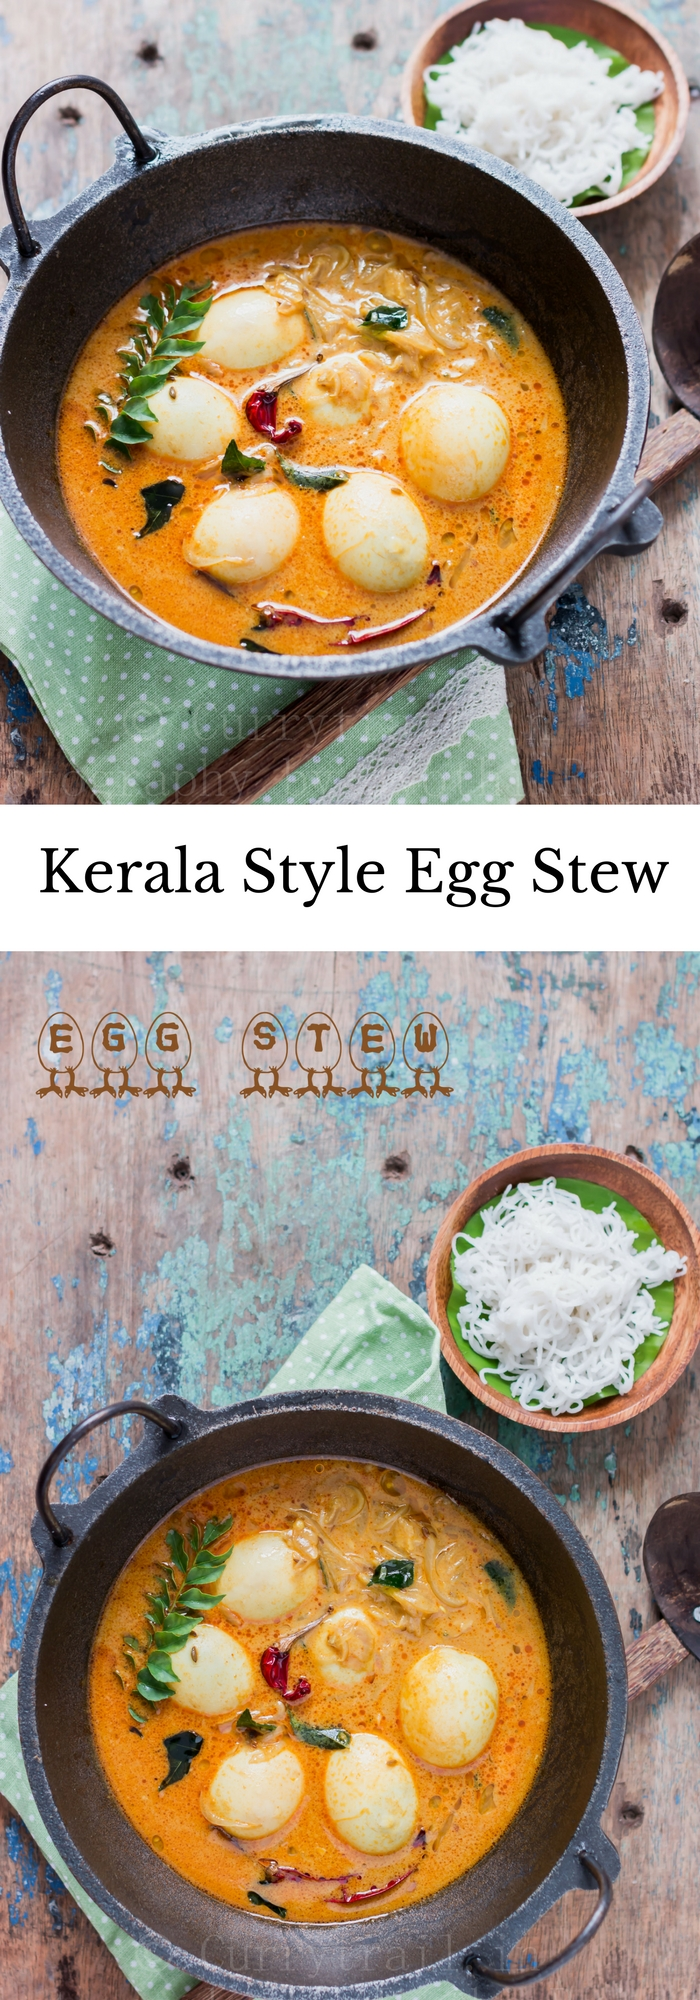 egg stew Kerala style served in cast iron pan for breakfast with rice string hoppers with text overlay